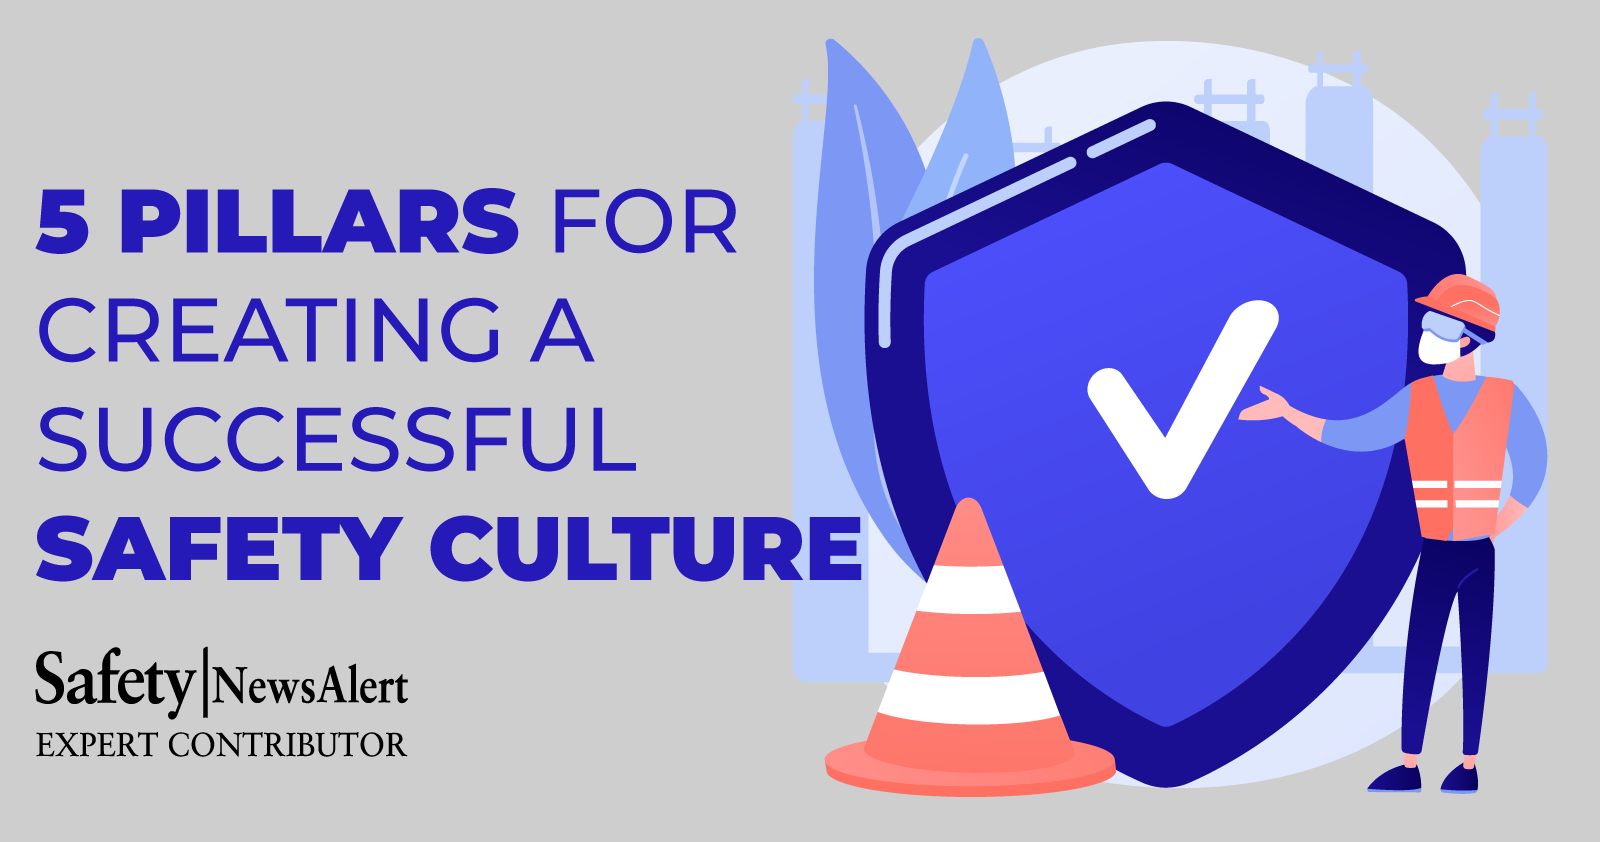 5 Pillars For Creating A Successful Safety Culture